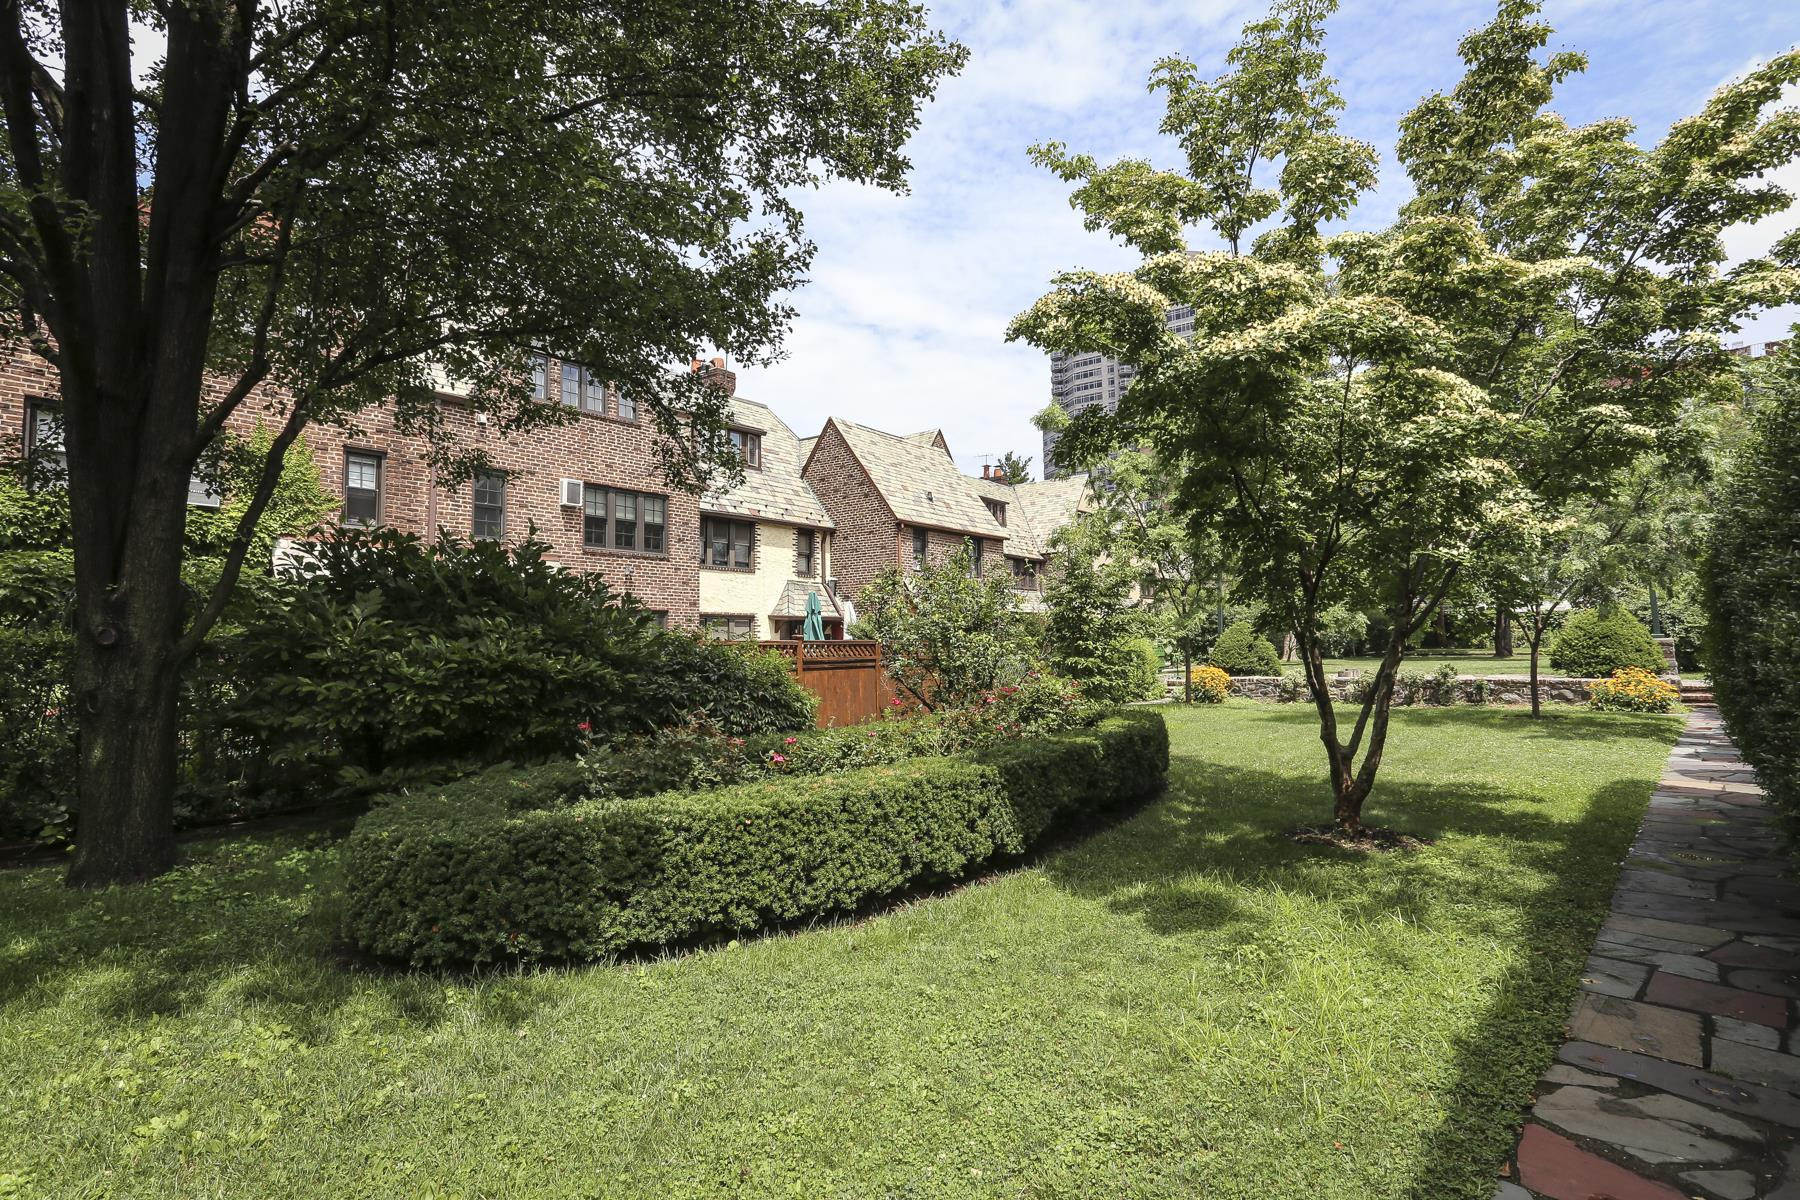 Additional photo for property listing at 111-17 76 AVENUE 111-17 76 AVENUE Forest Hills, 紐約州 11375 美國